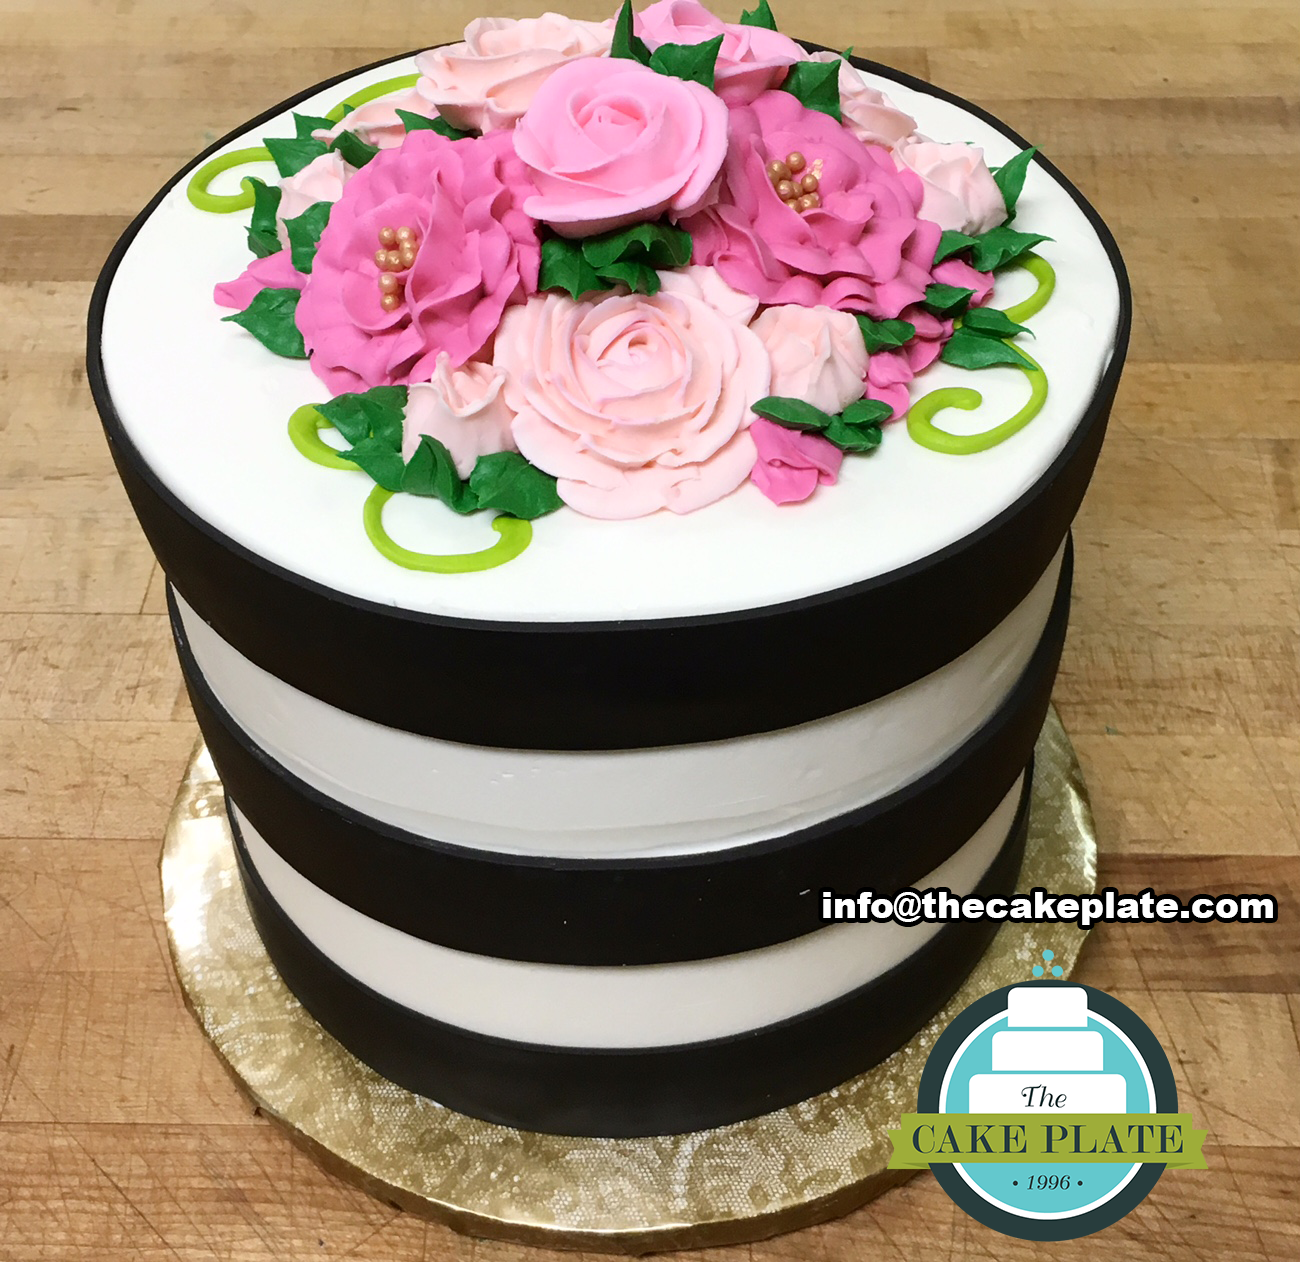 Pink buttercream flowers and stripes cake. Classic. | The Cake Plate Instagram Austin & Pink buttercream flowers and stripes cake. Classic. | The Cake Plate ...